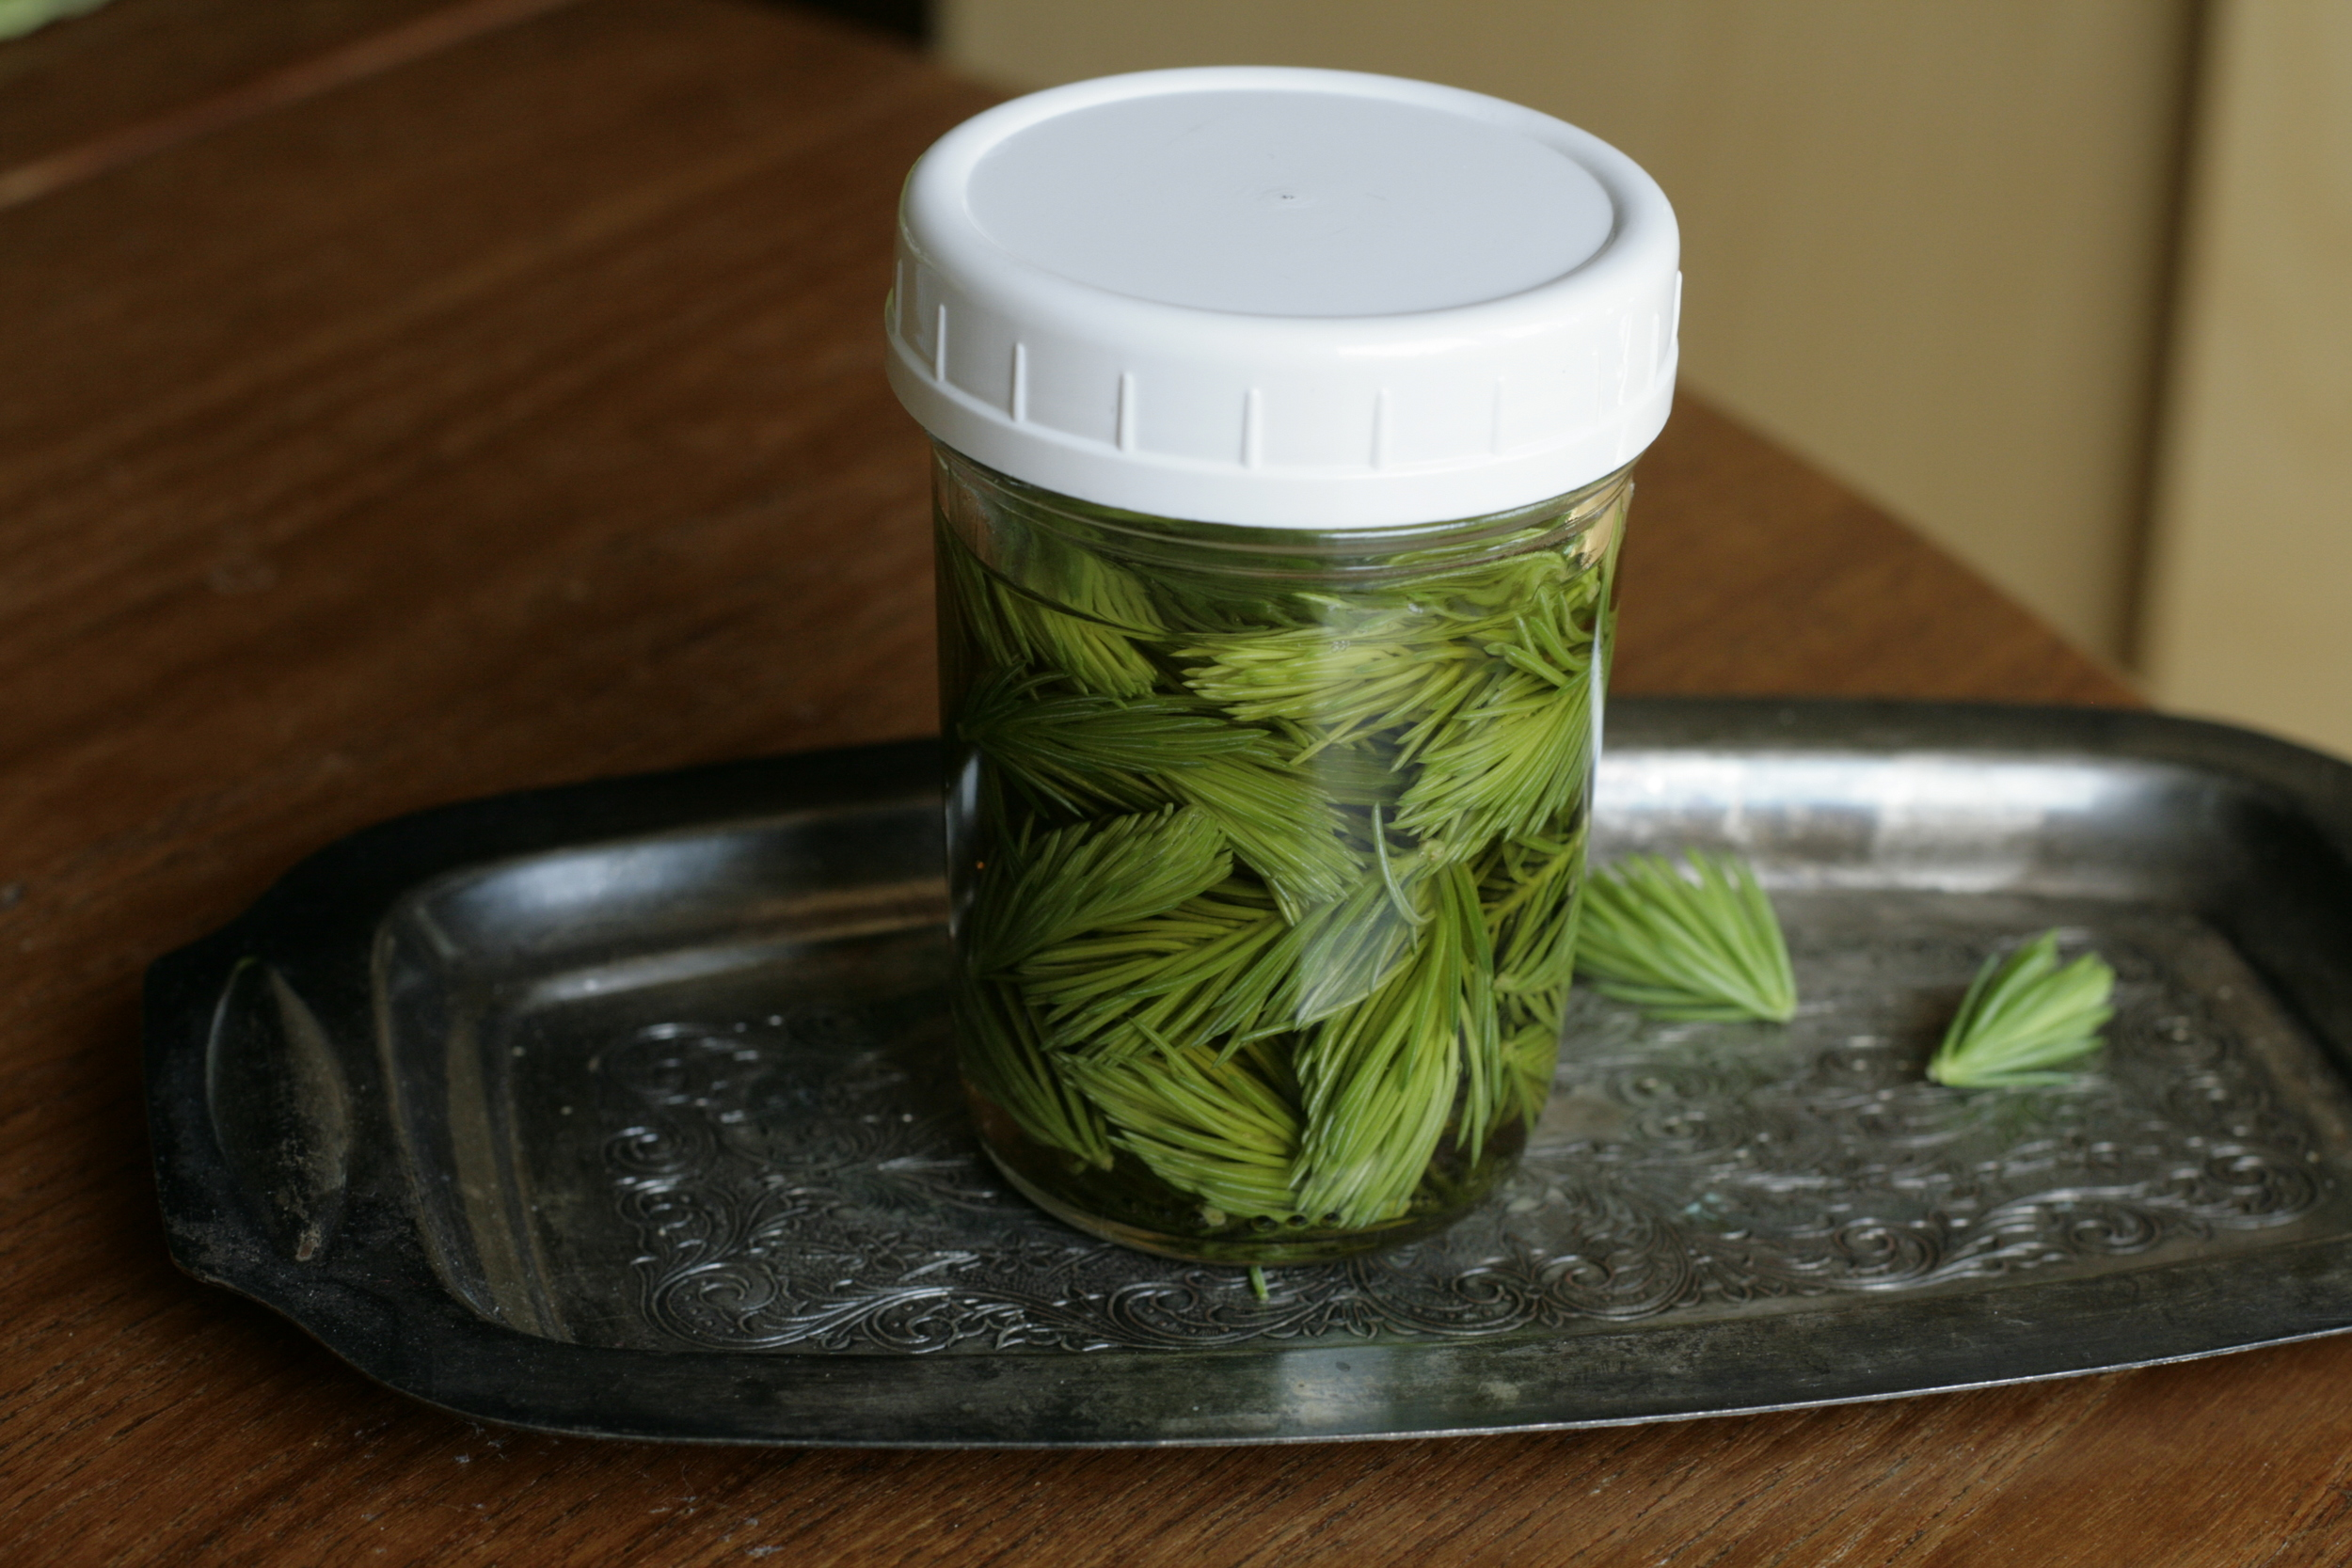 spruce tip infused apple cider - just let tips infuse in apple cider vinegar for a week or two